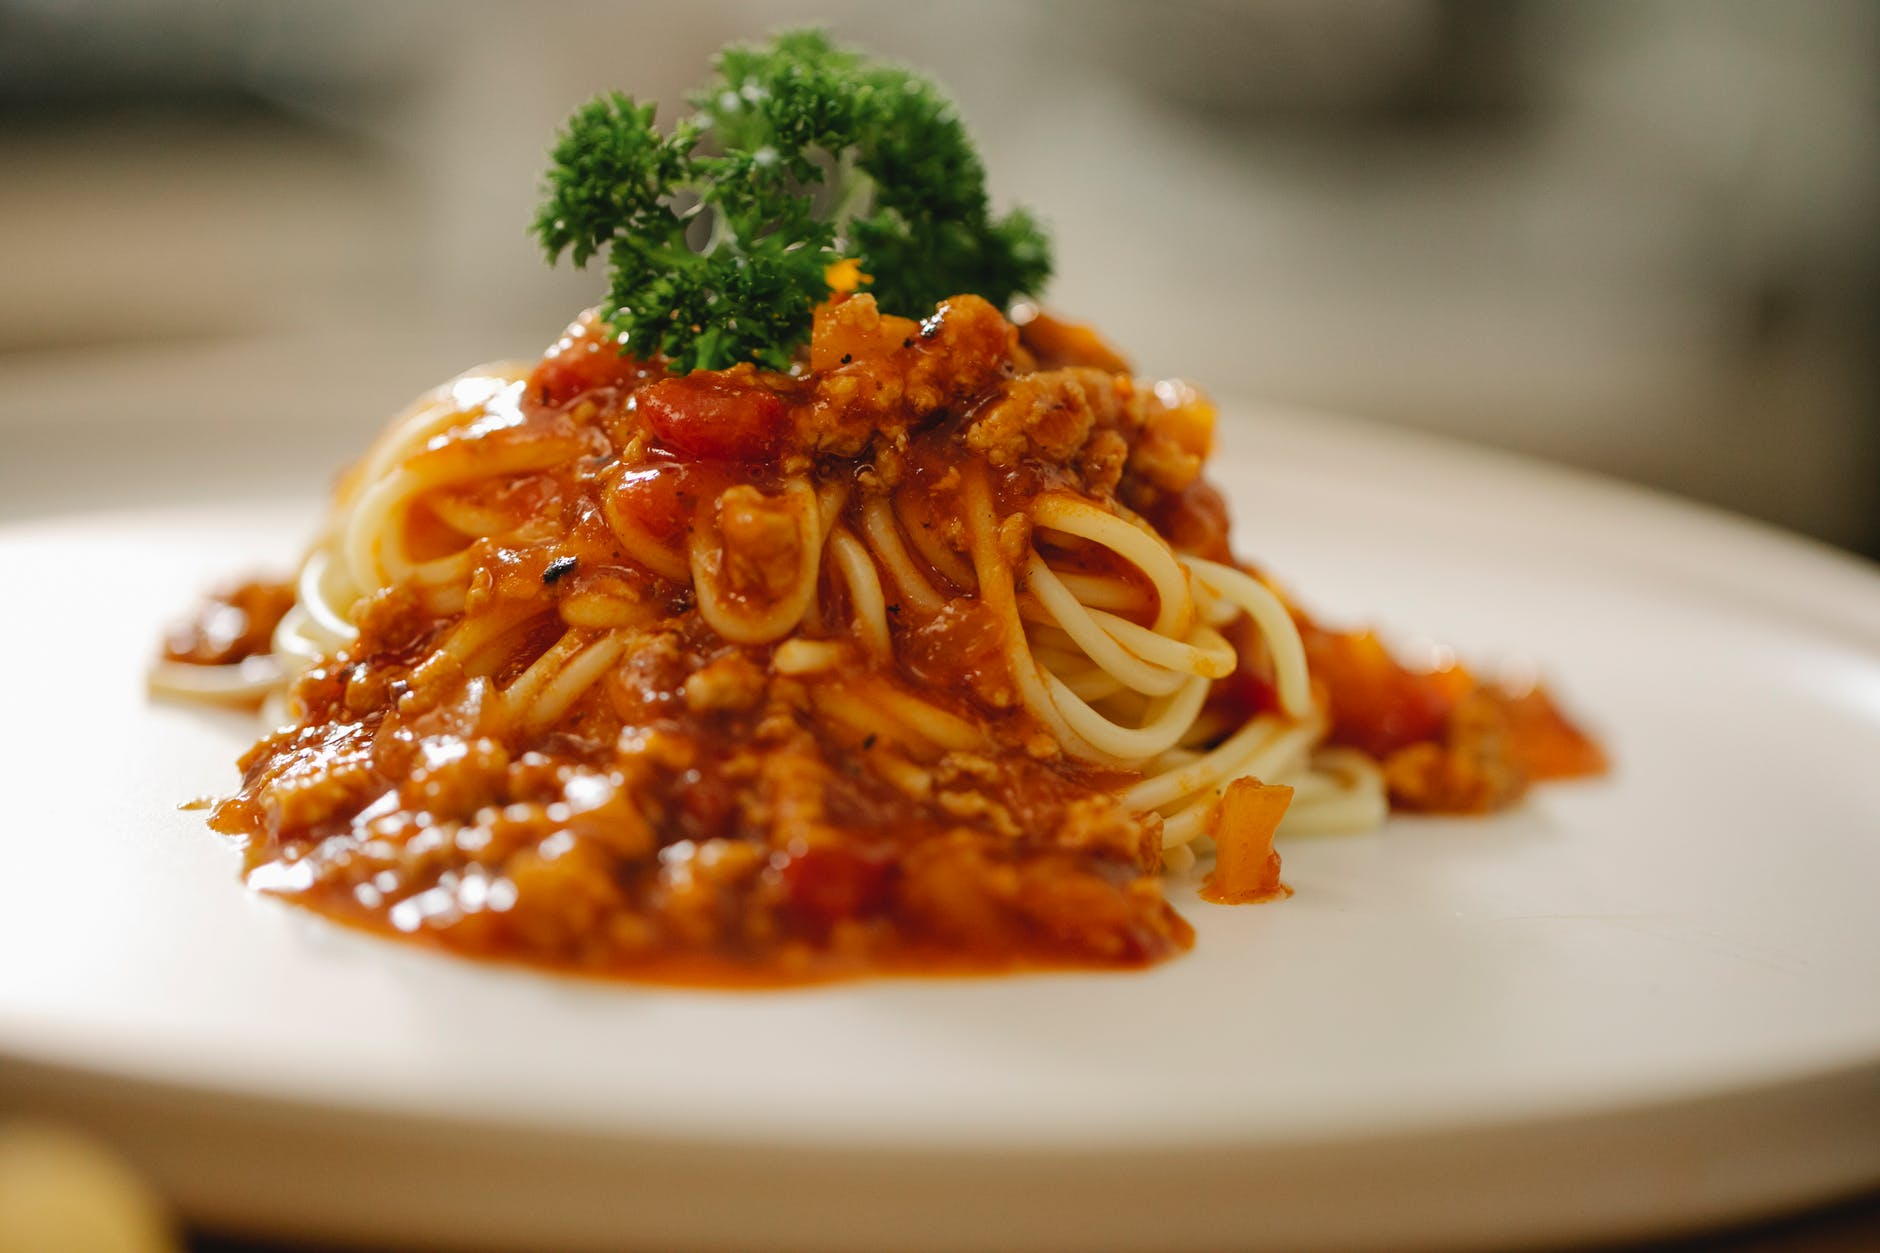 appetizing pasta bolognese served with parsley